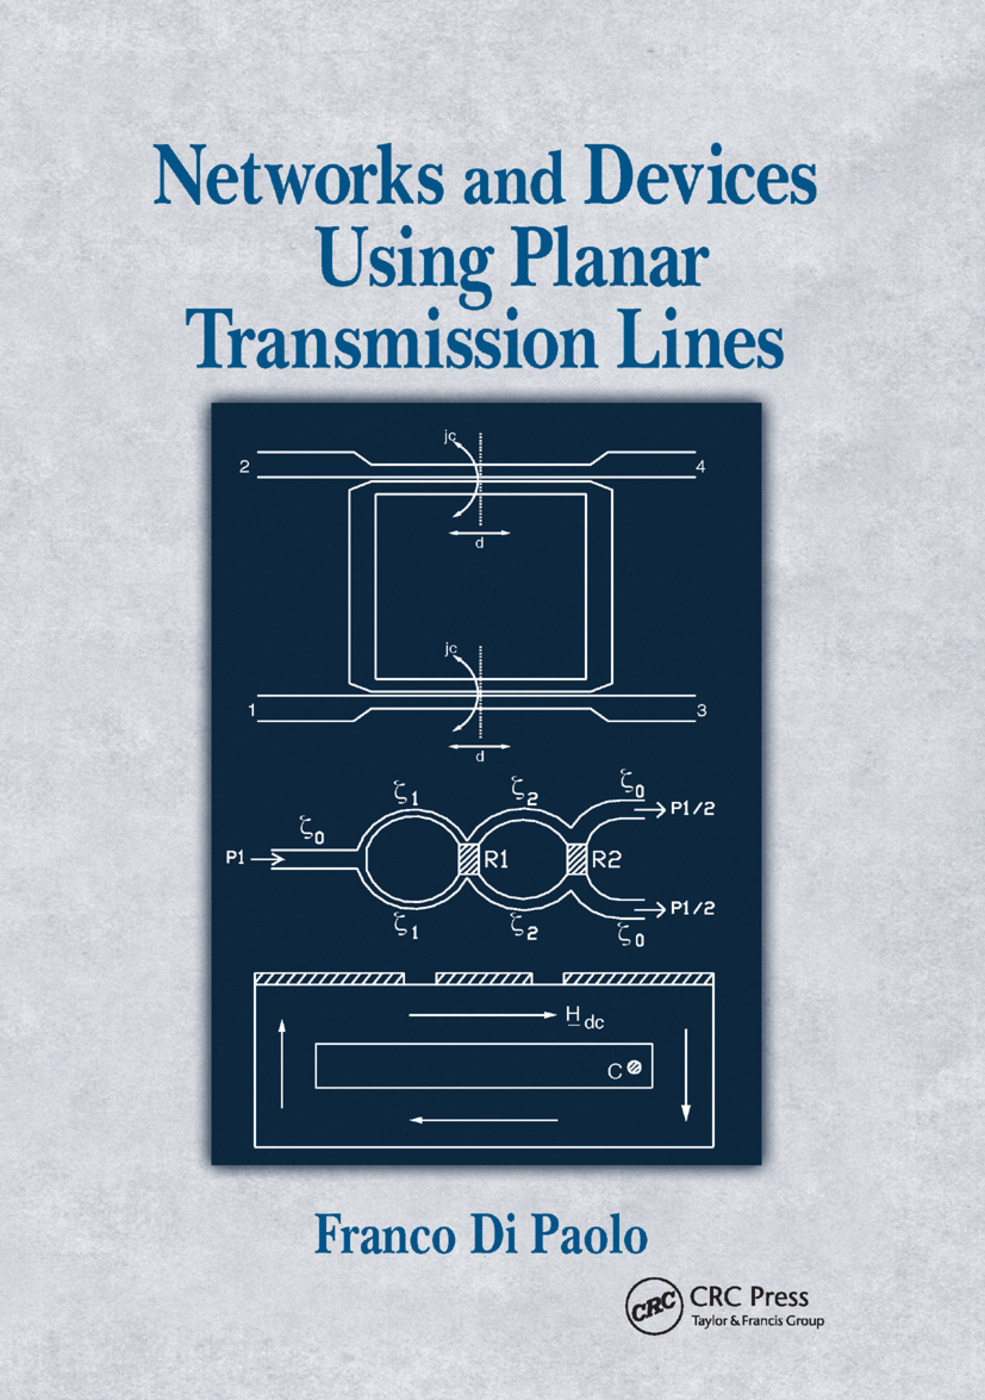 Networks and Devices Using Planar Transmissions Lines